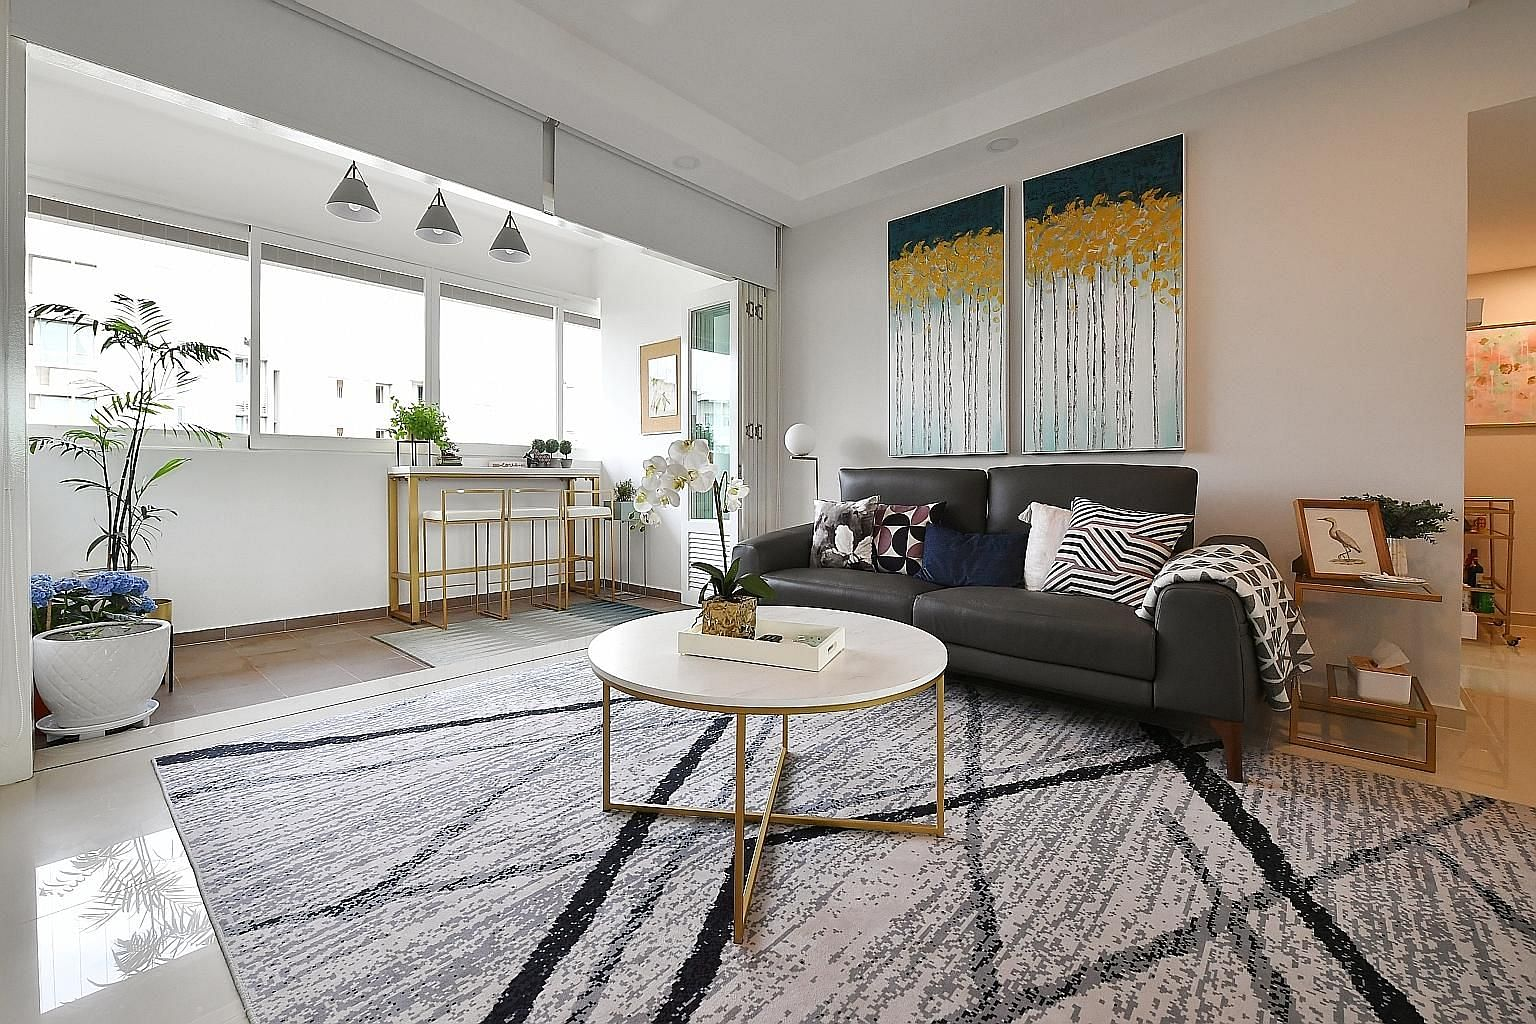 Zen and his sister, Zigsa - both children of entrepreneurs Joanne Huynh and Dorjee Sun - get their own play area in the living room of their four-bedroom condominium in Robertson Quay. While after-dinner drinks are held on the balcony (far left) of t